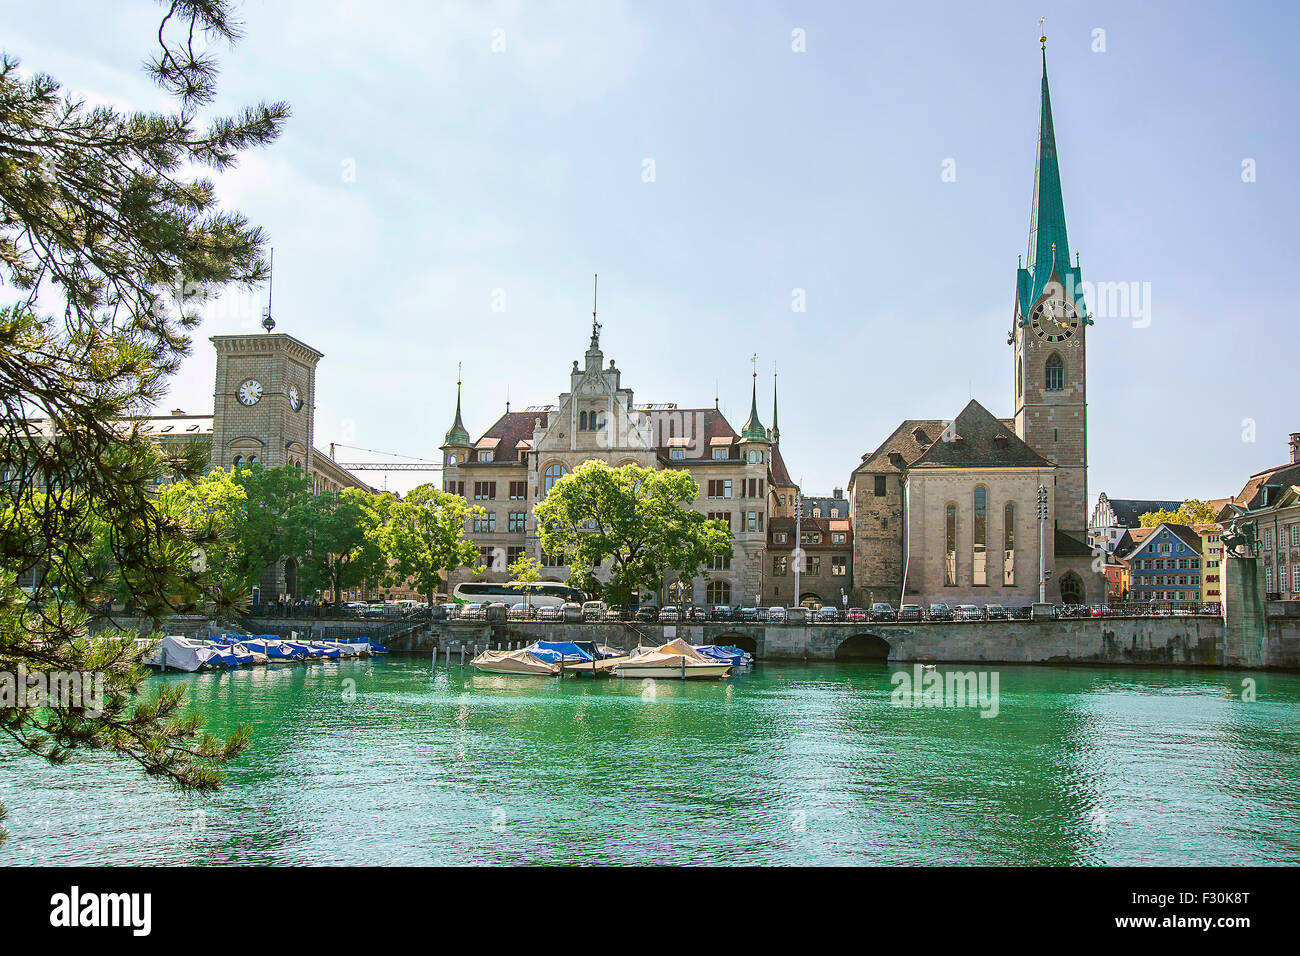 Zurich city center and Fraumunster Cathedral in summer, Switzerland - Stock Image